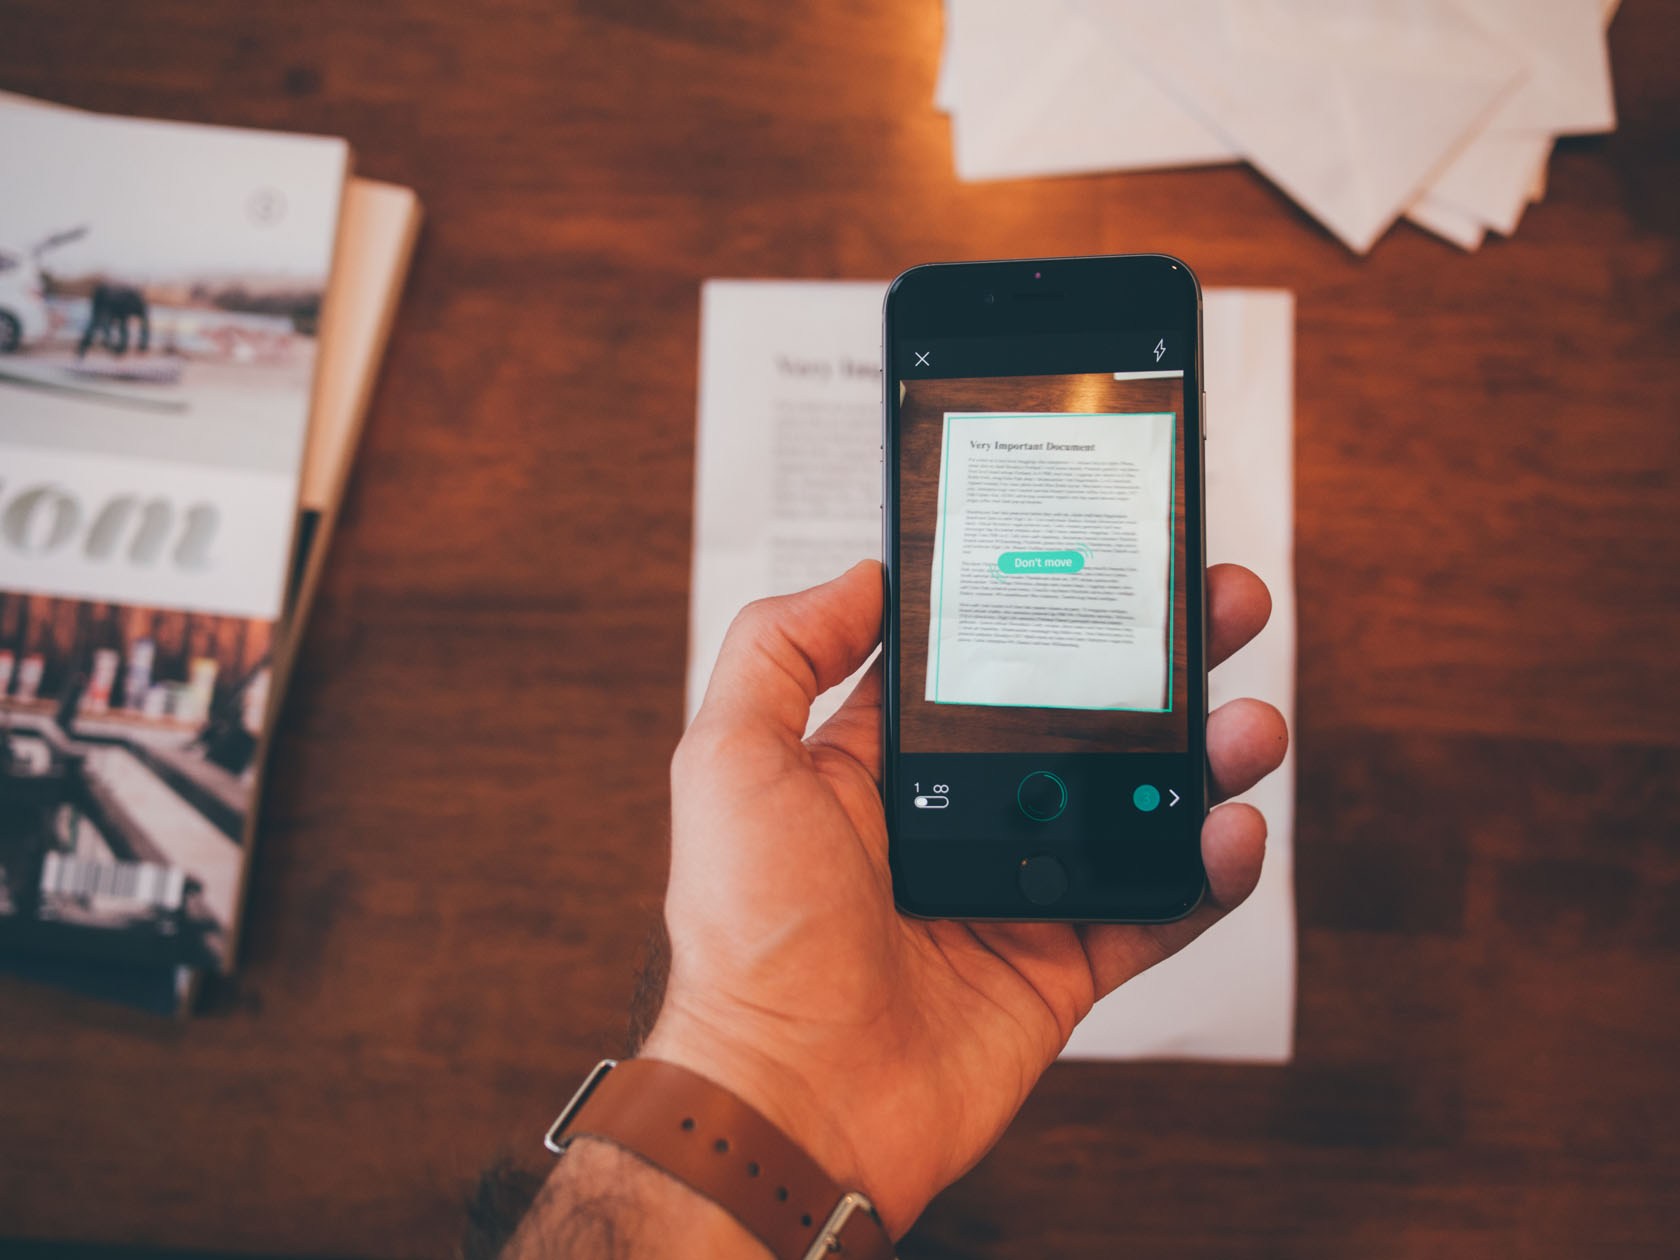 Scanbot is our favorite iOS document scanning app